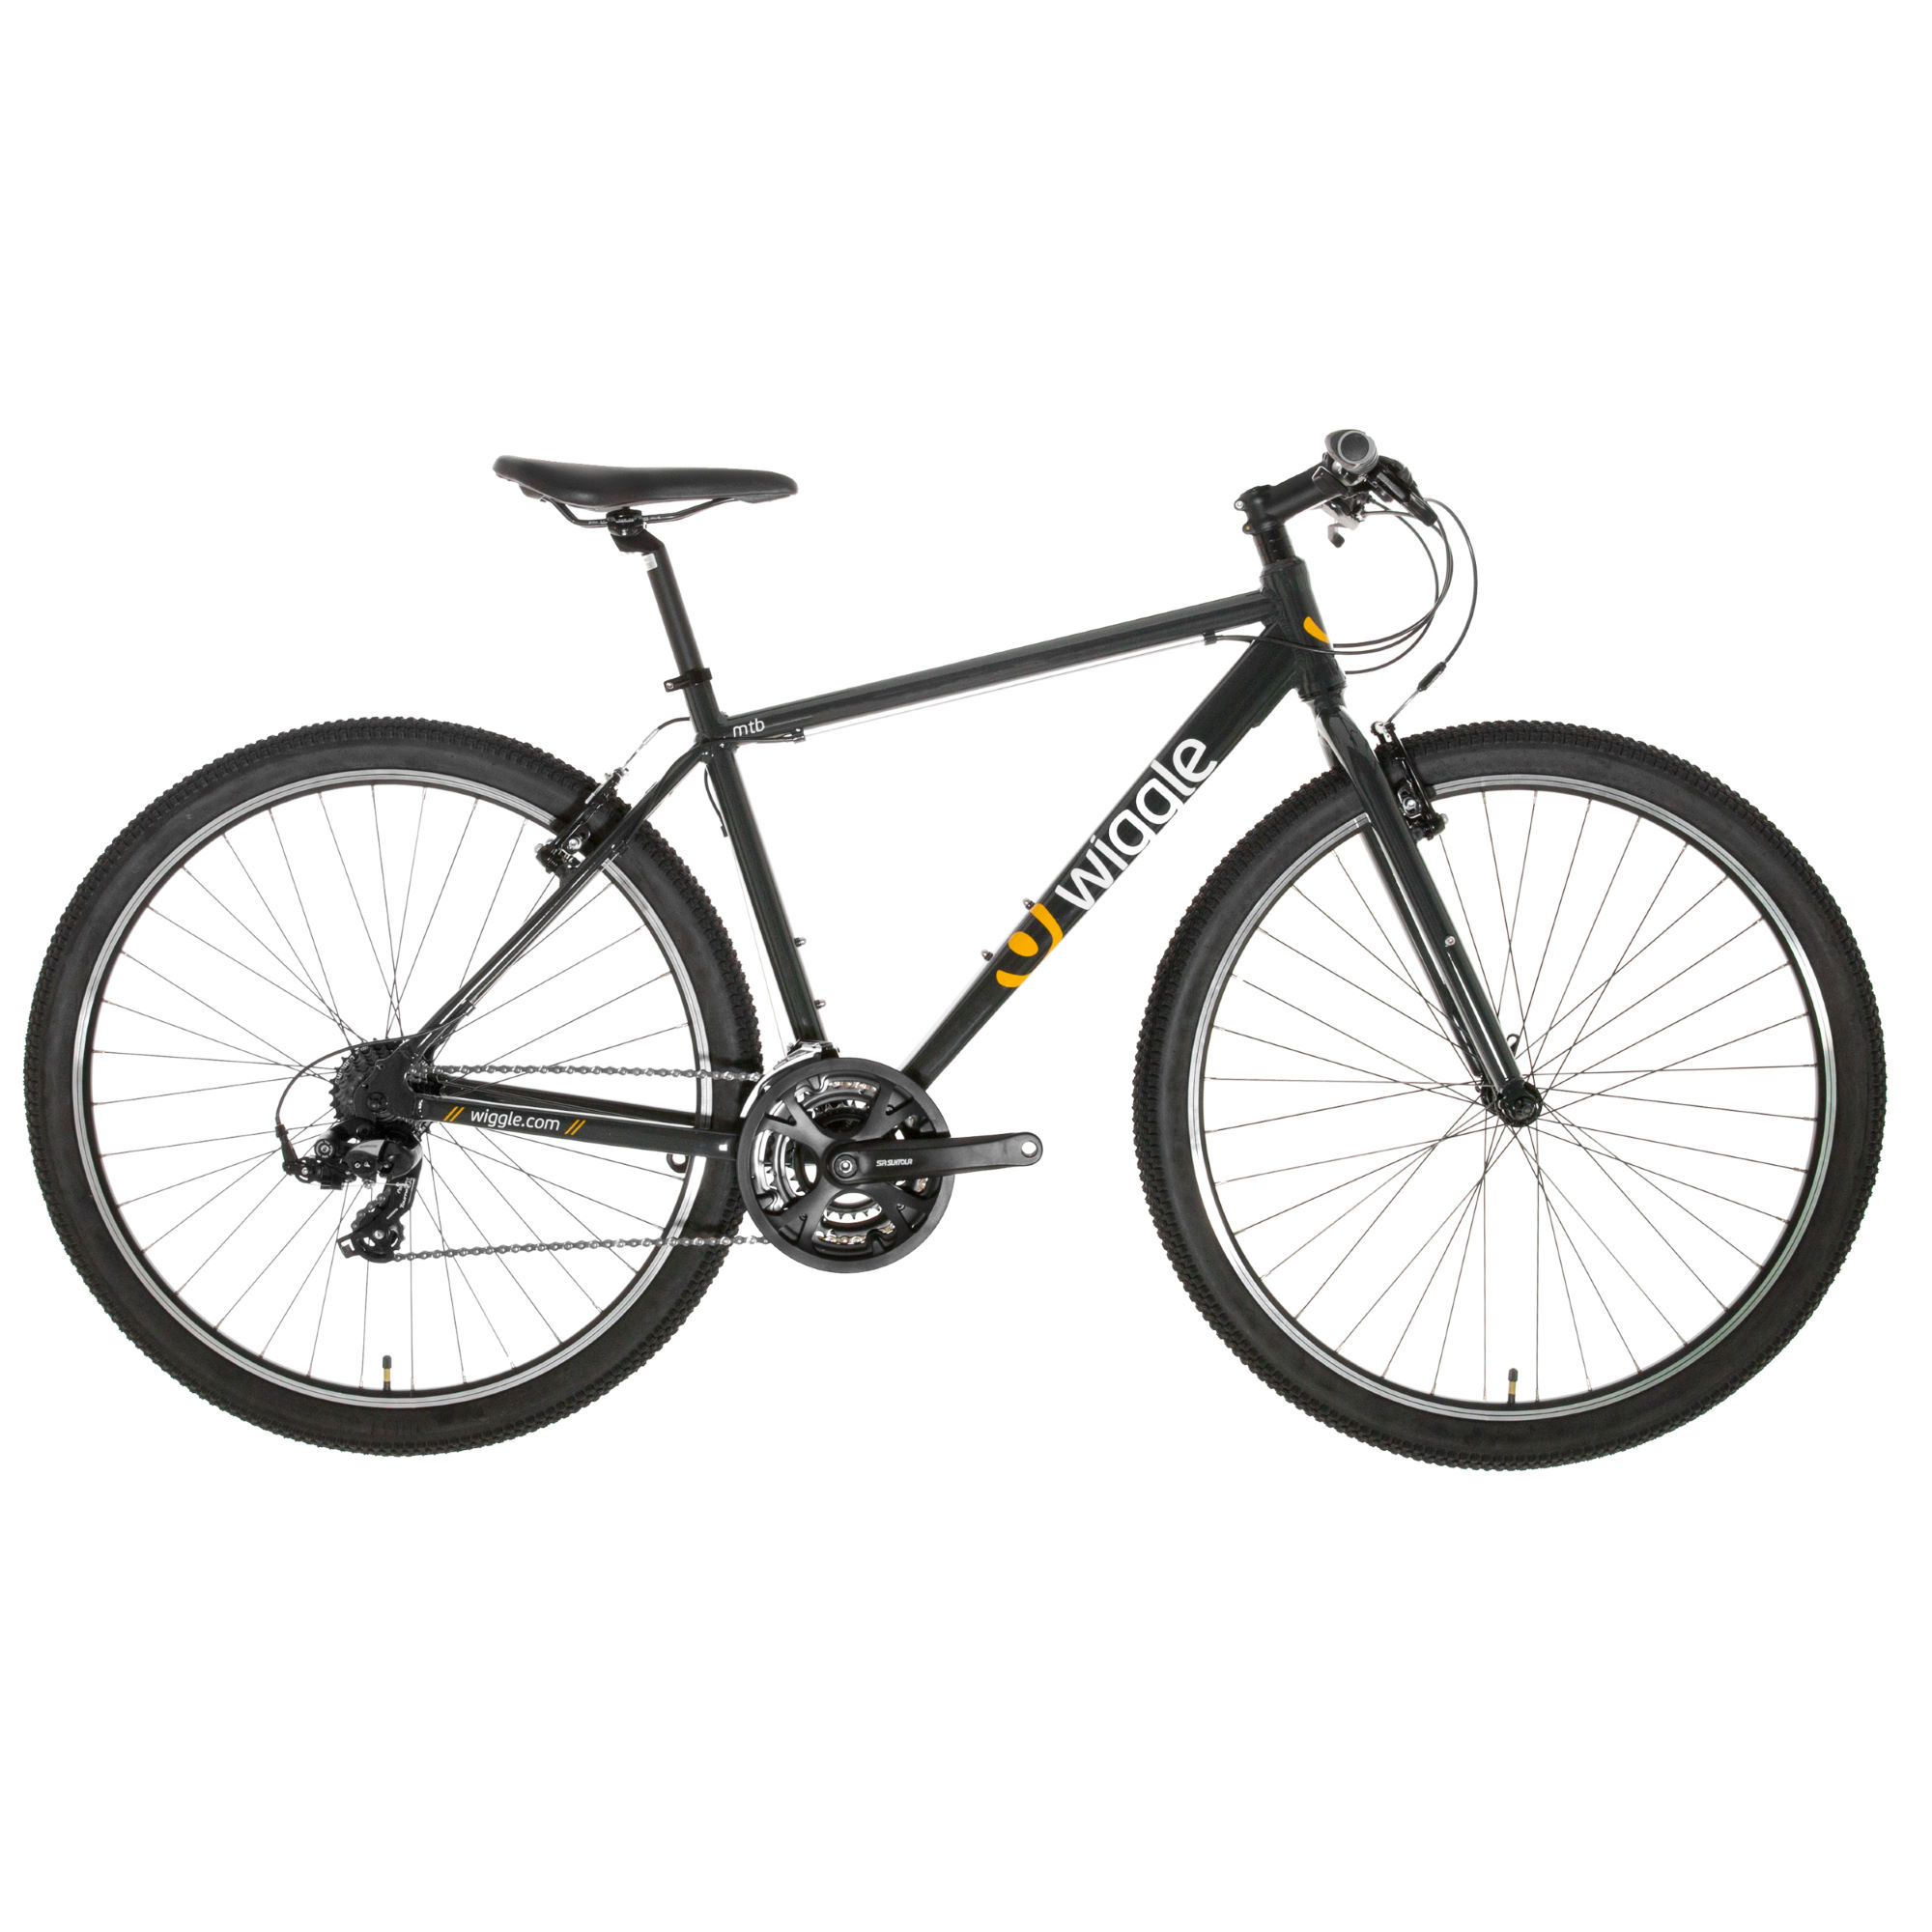 Wiggle coupon and online voucher codes for % %. With over 10 years online bike parts and accessories trading and a deep history and passion for cycling, Wiggle is the UK's #1 online cycle shop and the UK's 5th most popular online sports shop.